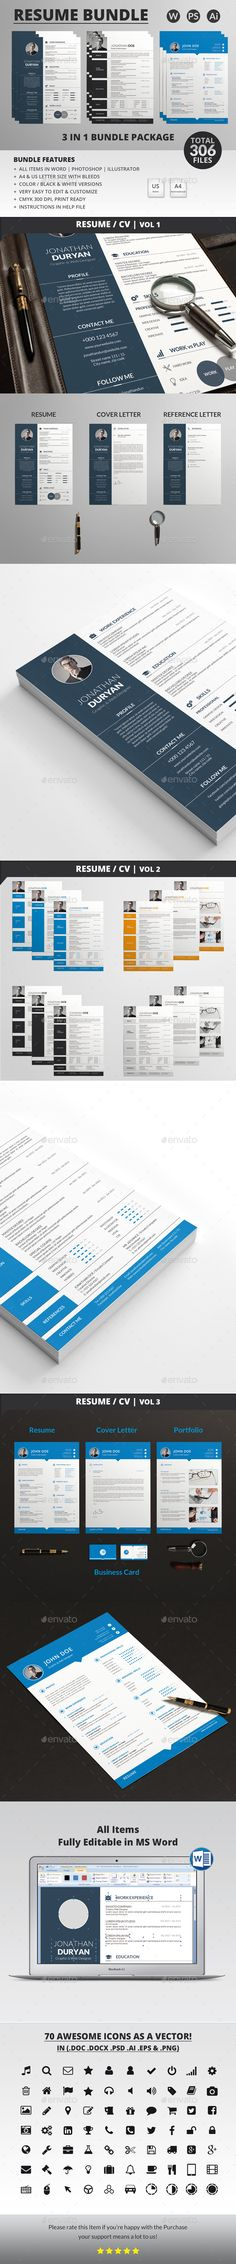 Resume Template PSD, AI, EPS, DOCX \ DOC Resume Templates - psd resume templates